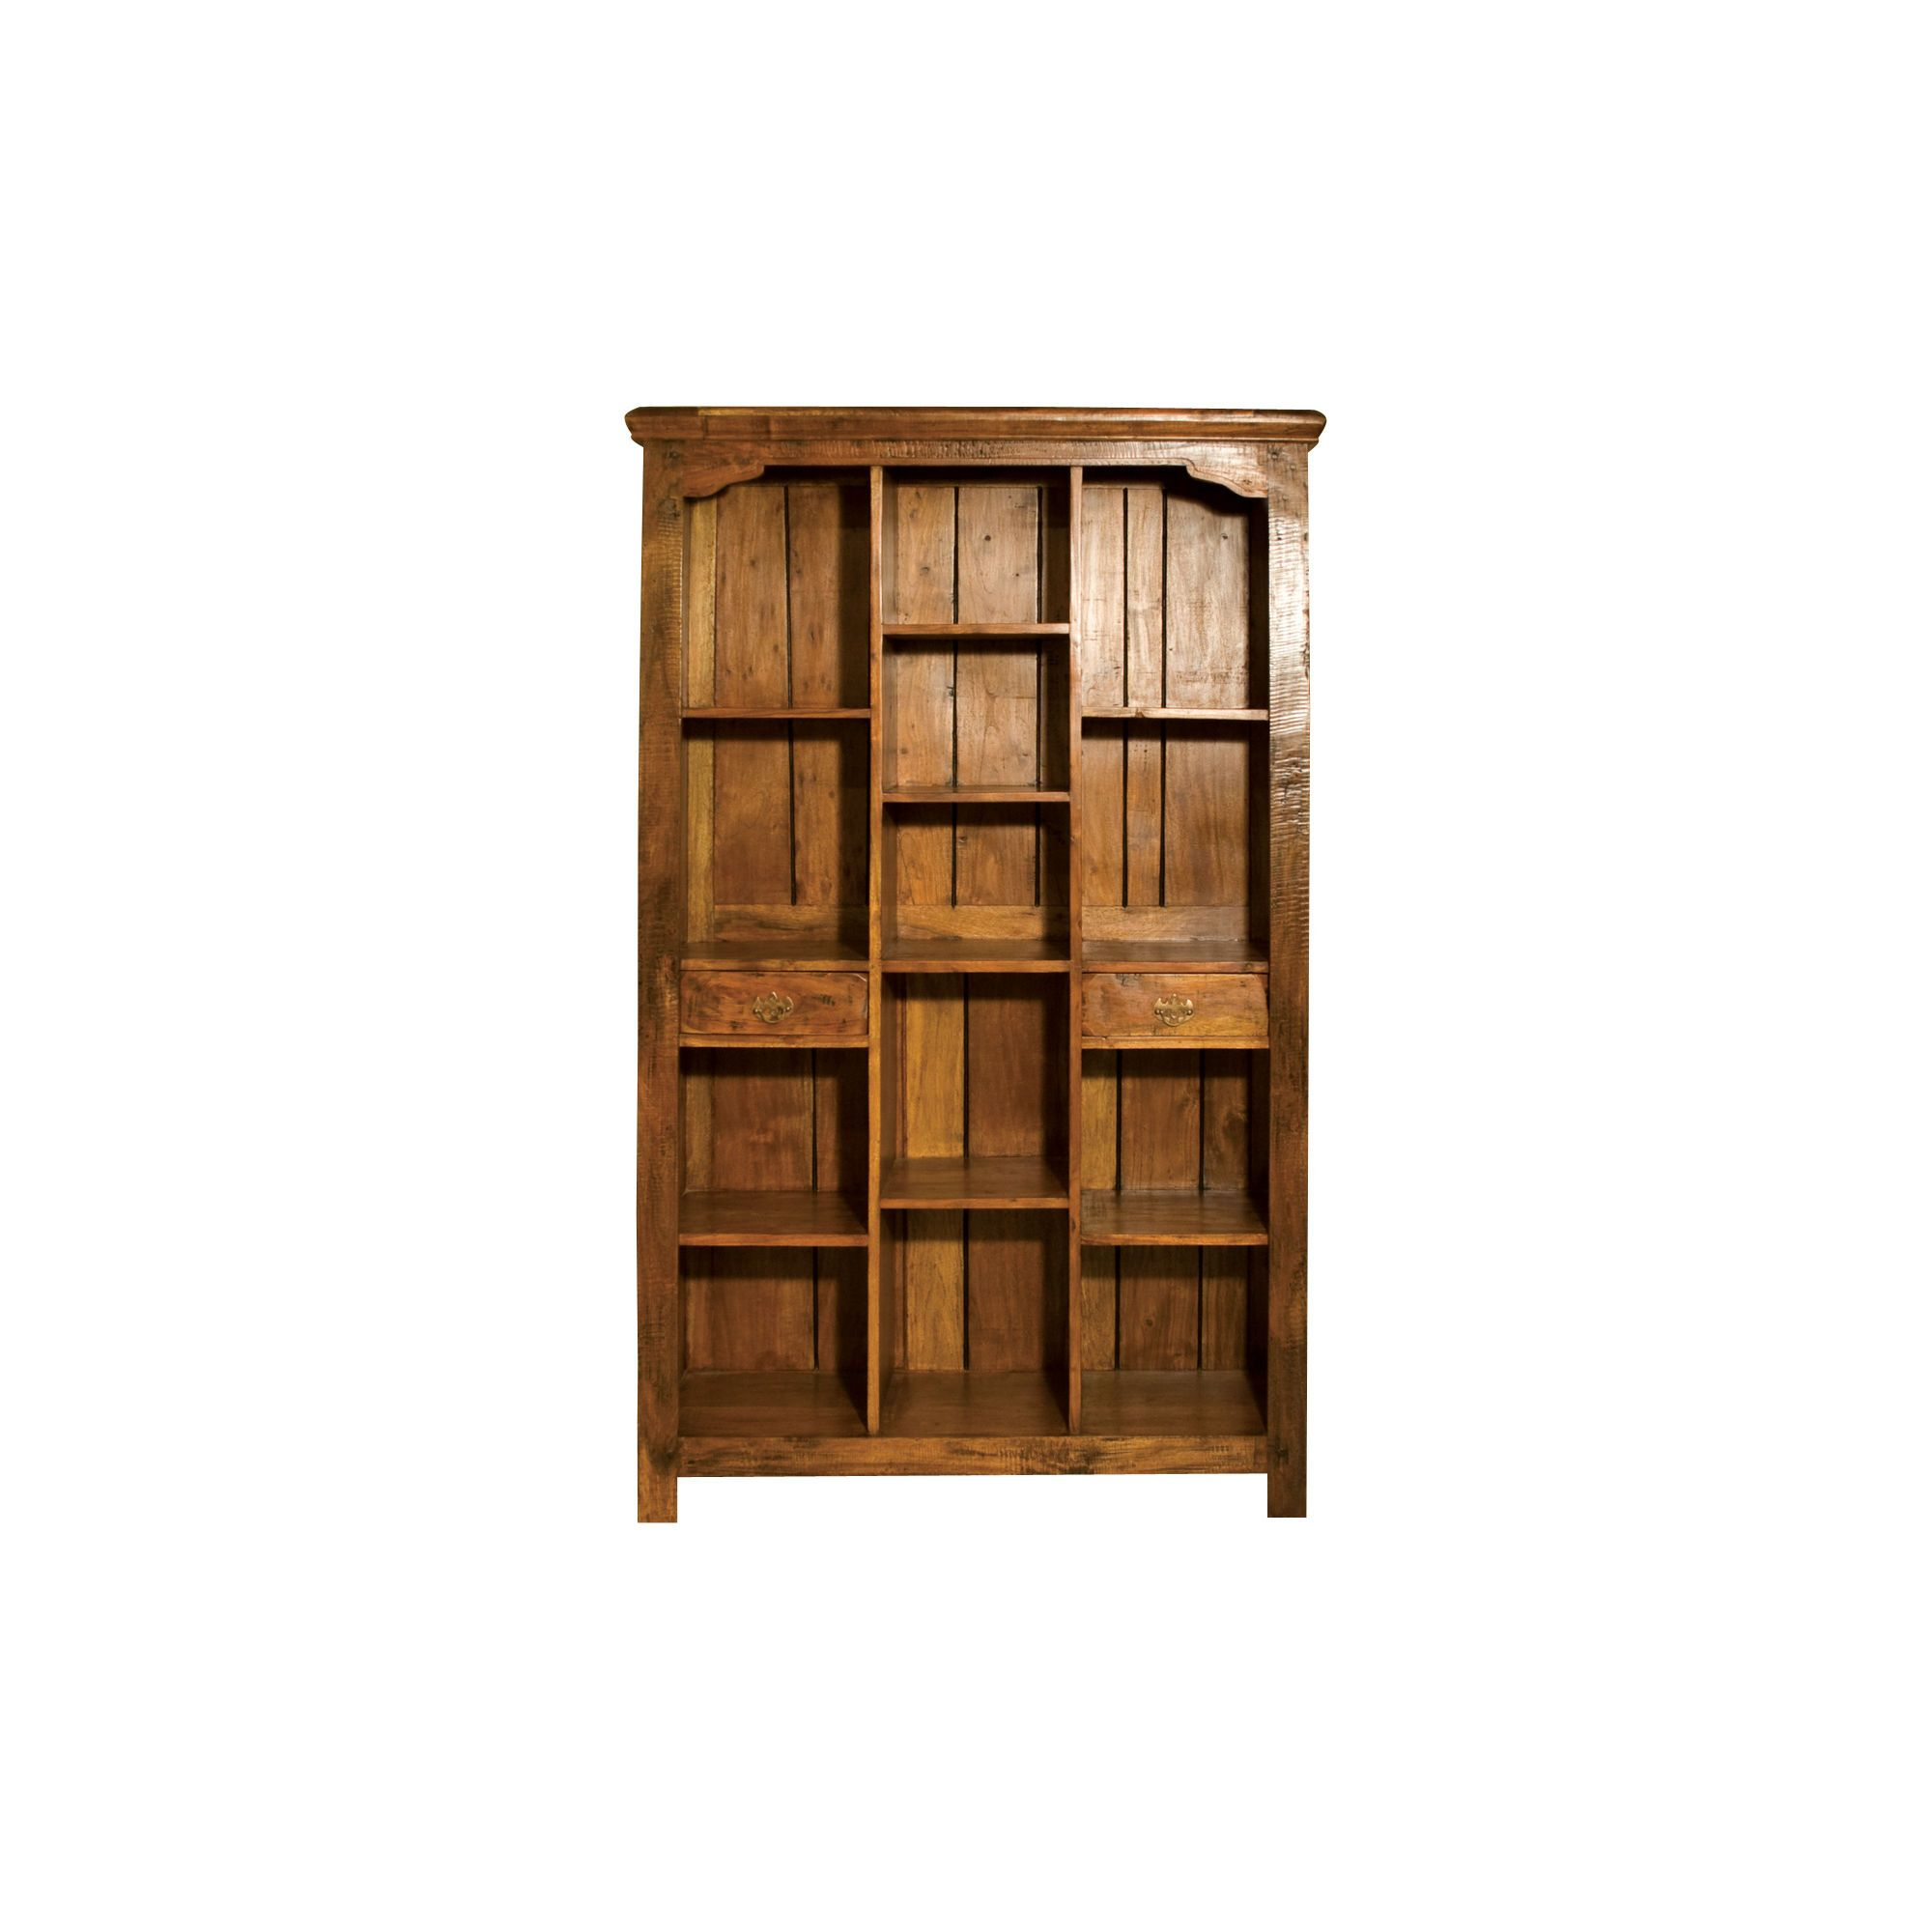 Alterton Furniture Granary Open Bookcase at Tesco Direct